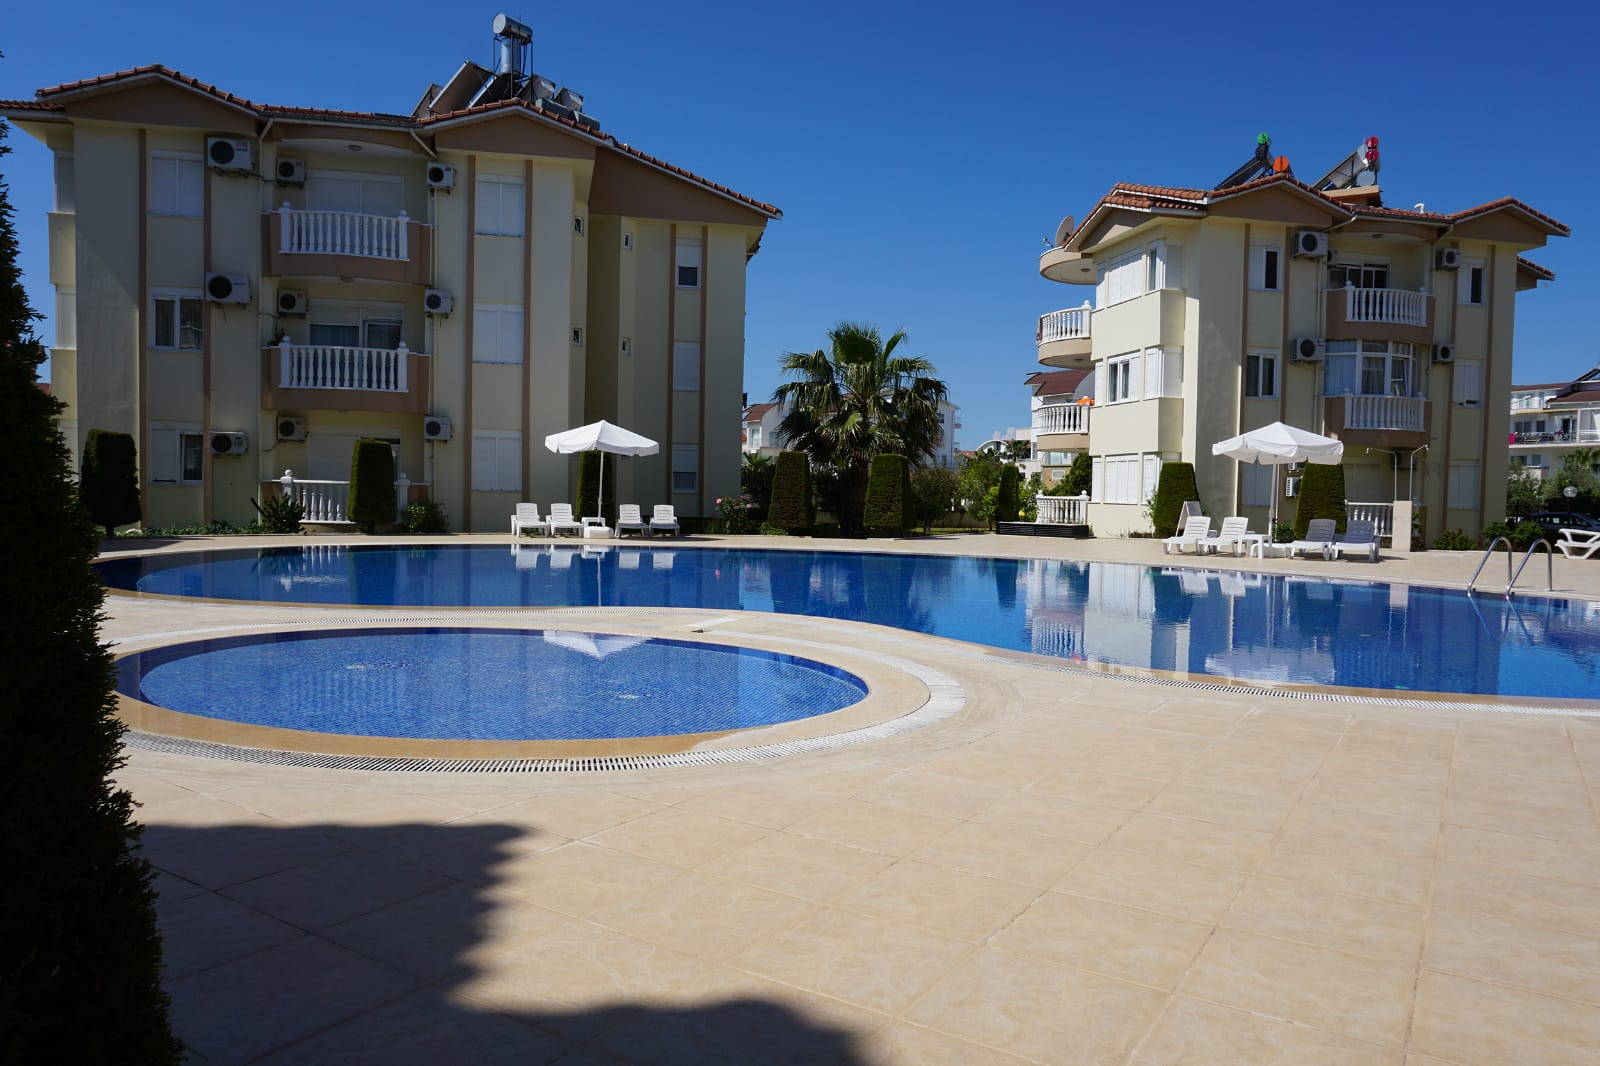 2-Bedroom Apartment In Residential Complex With Pool